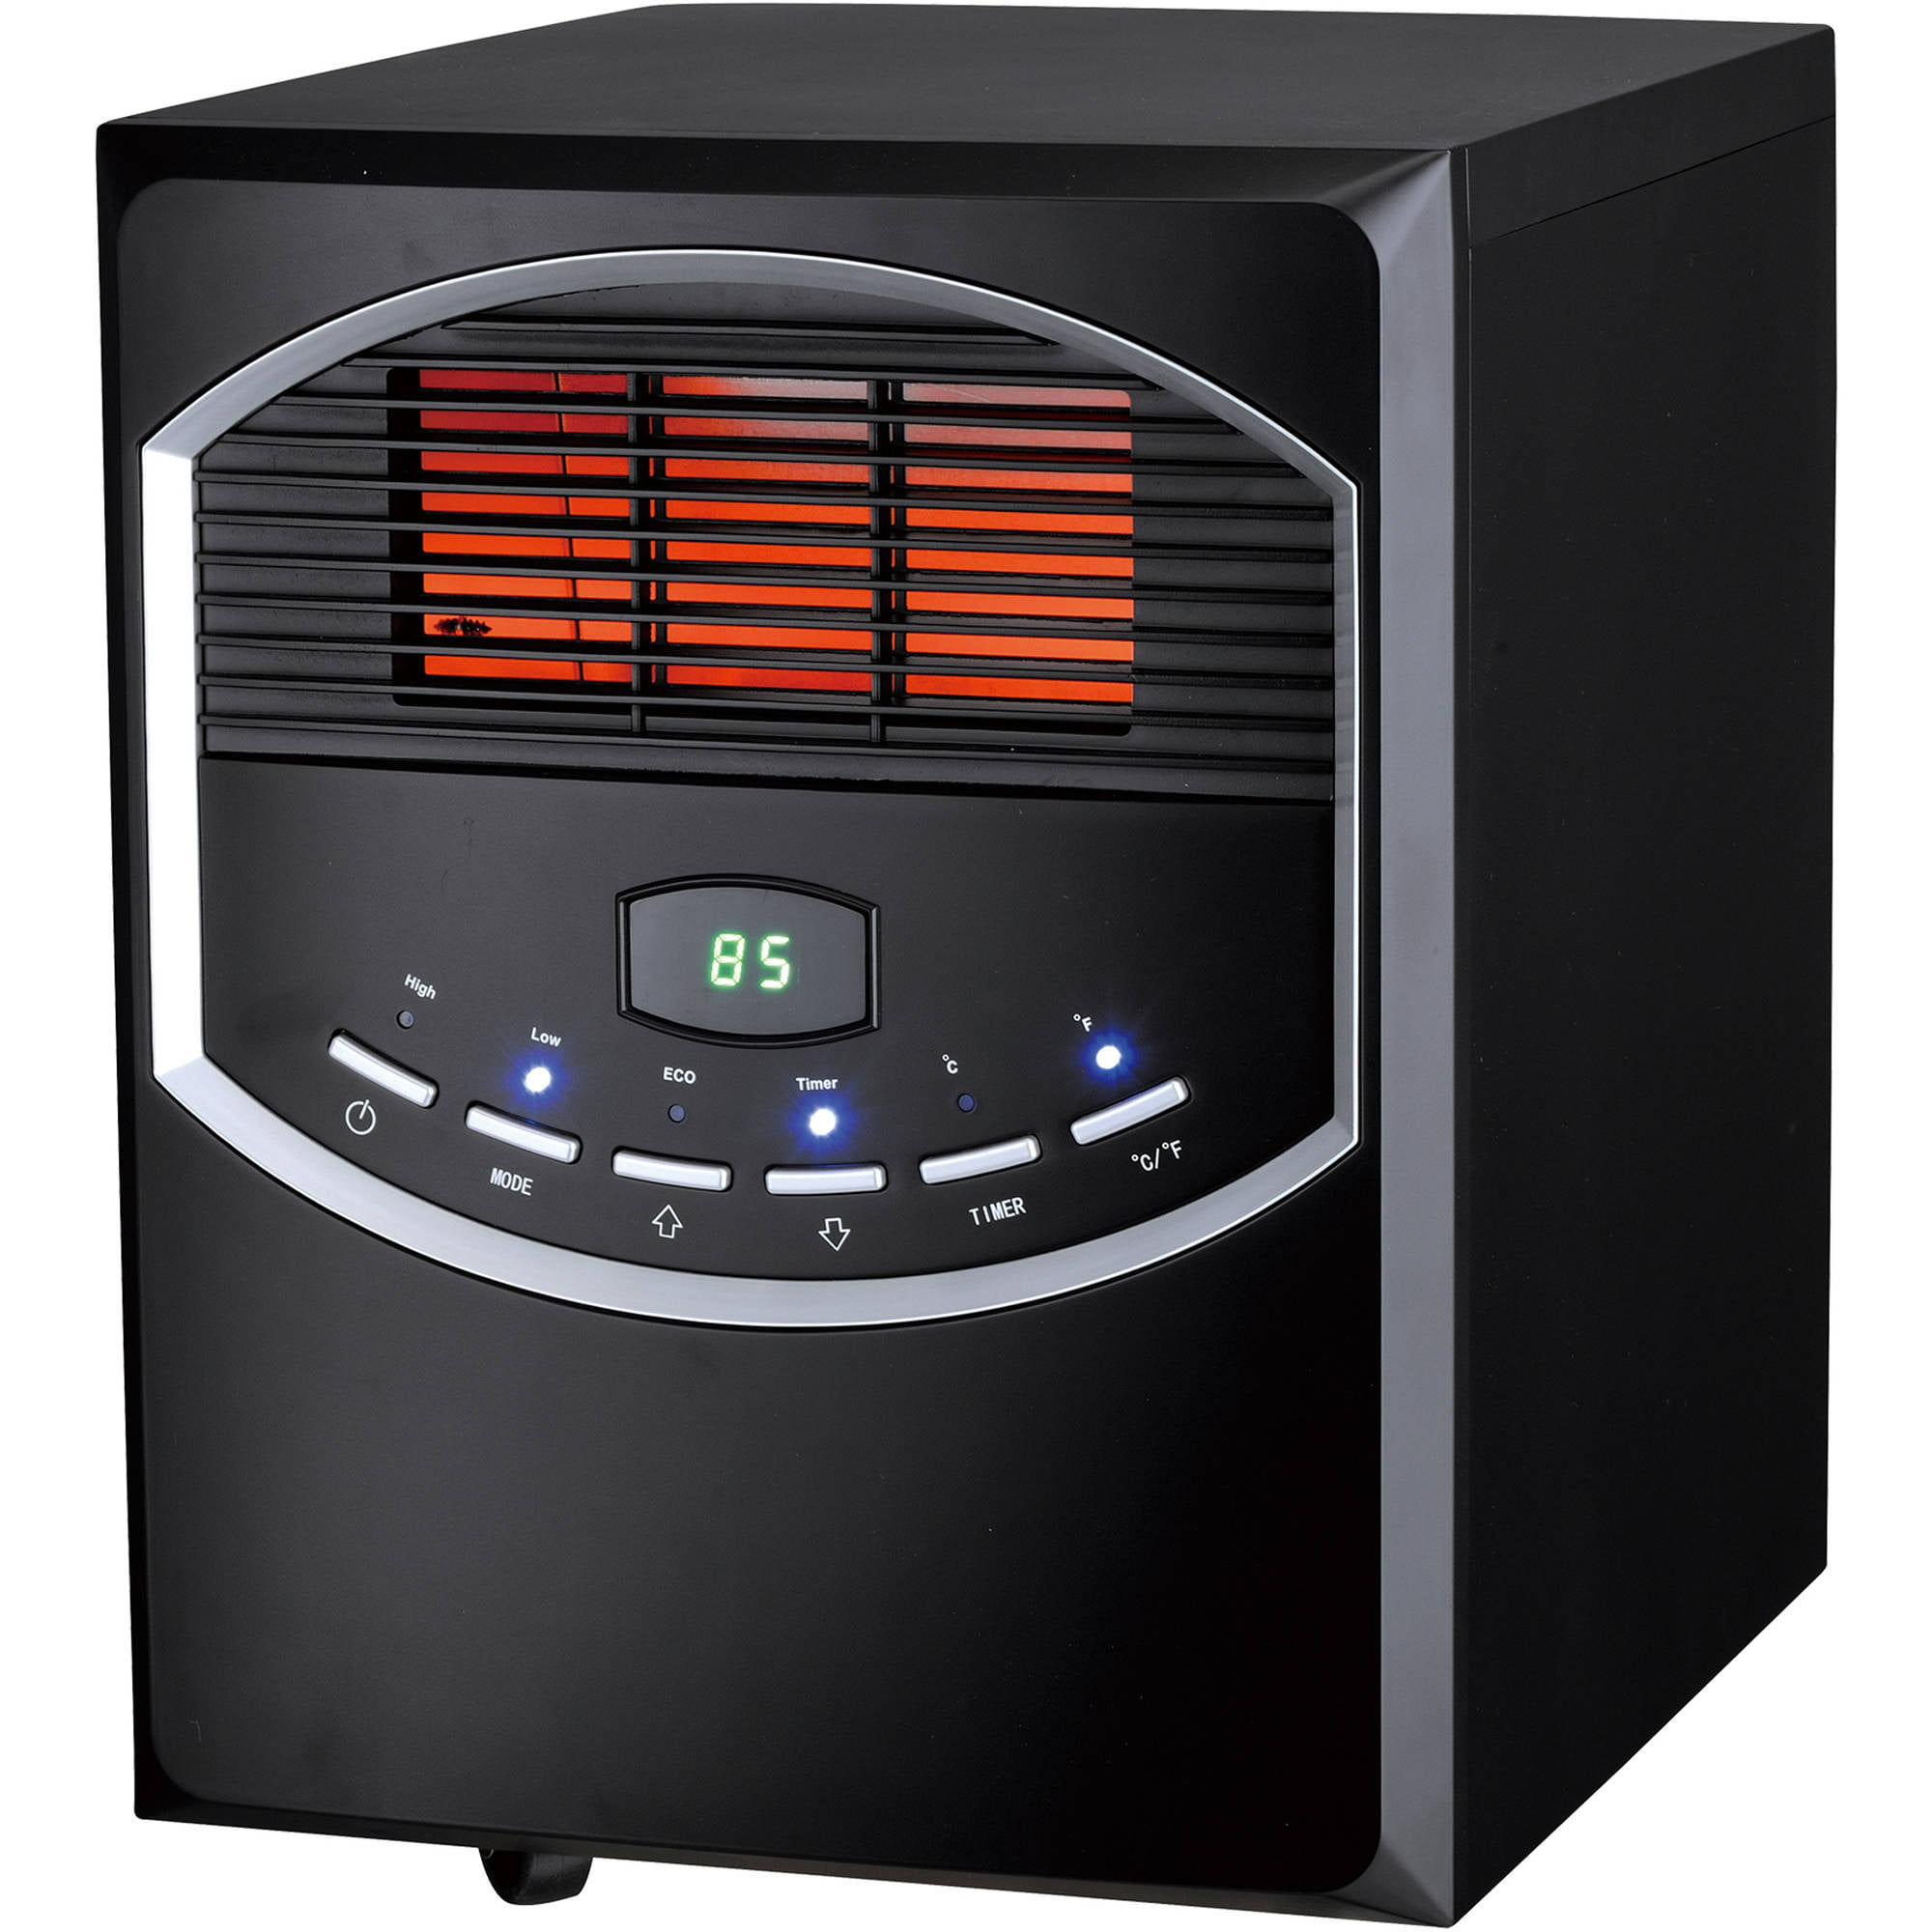 soleil infrared 4-element quartz electric room heater with remote